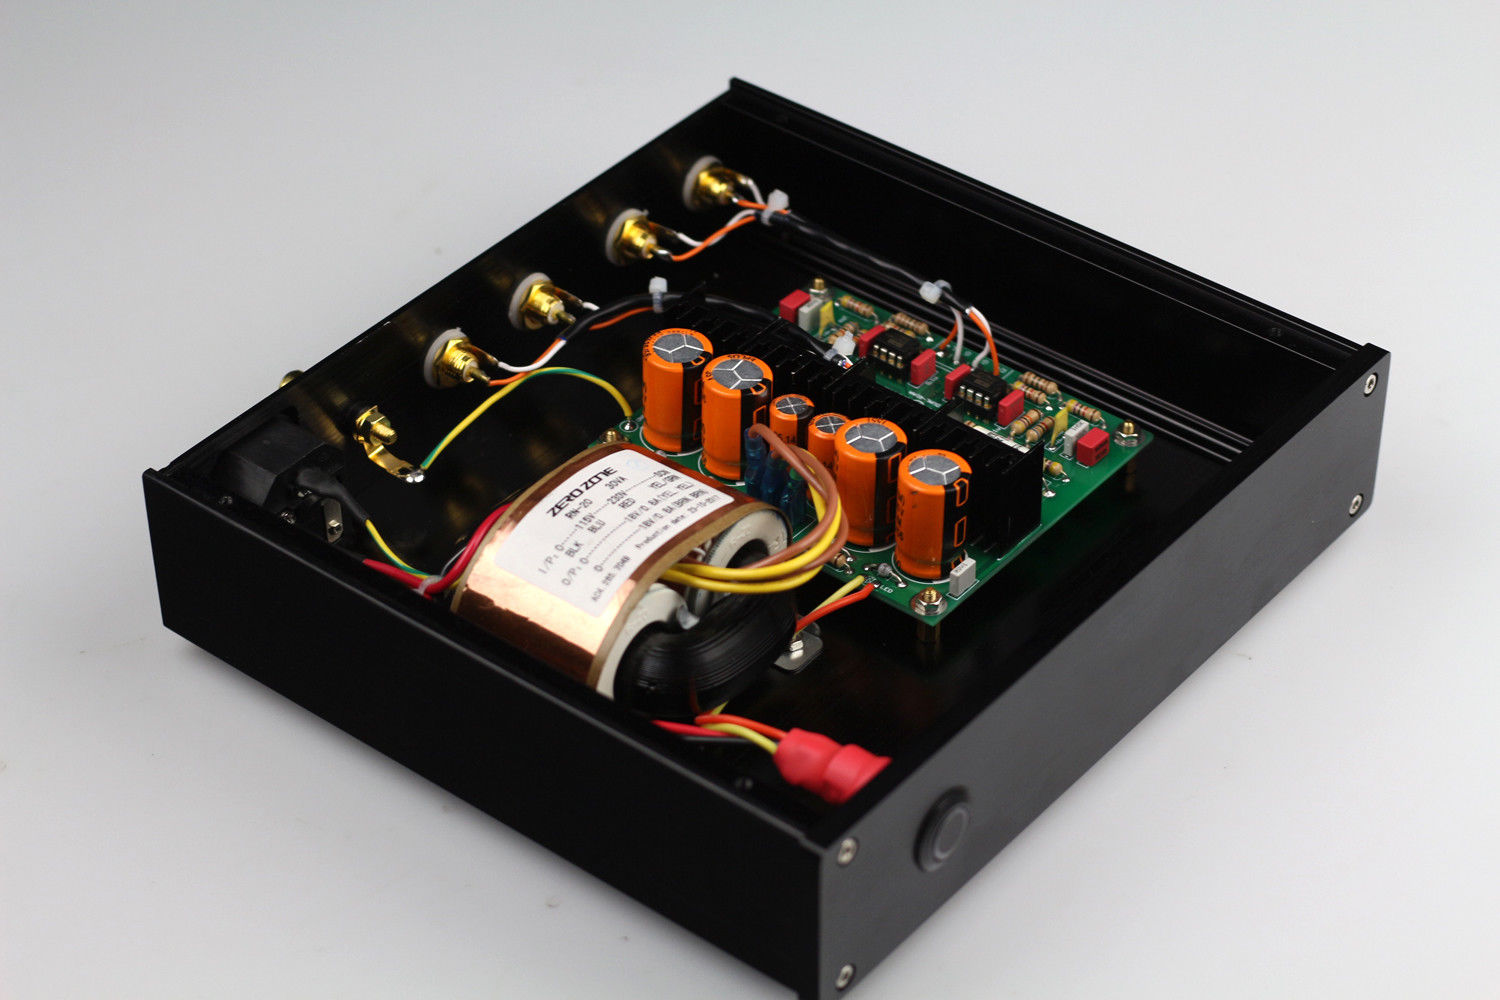 ZEROZONE (DIY KIT) RIAA MM Phono Platine Préamplificateur/base sur DOUBLE MM LP amp L4-13